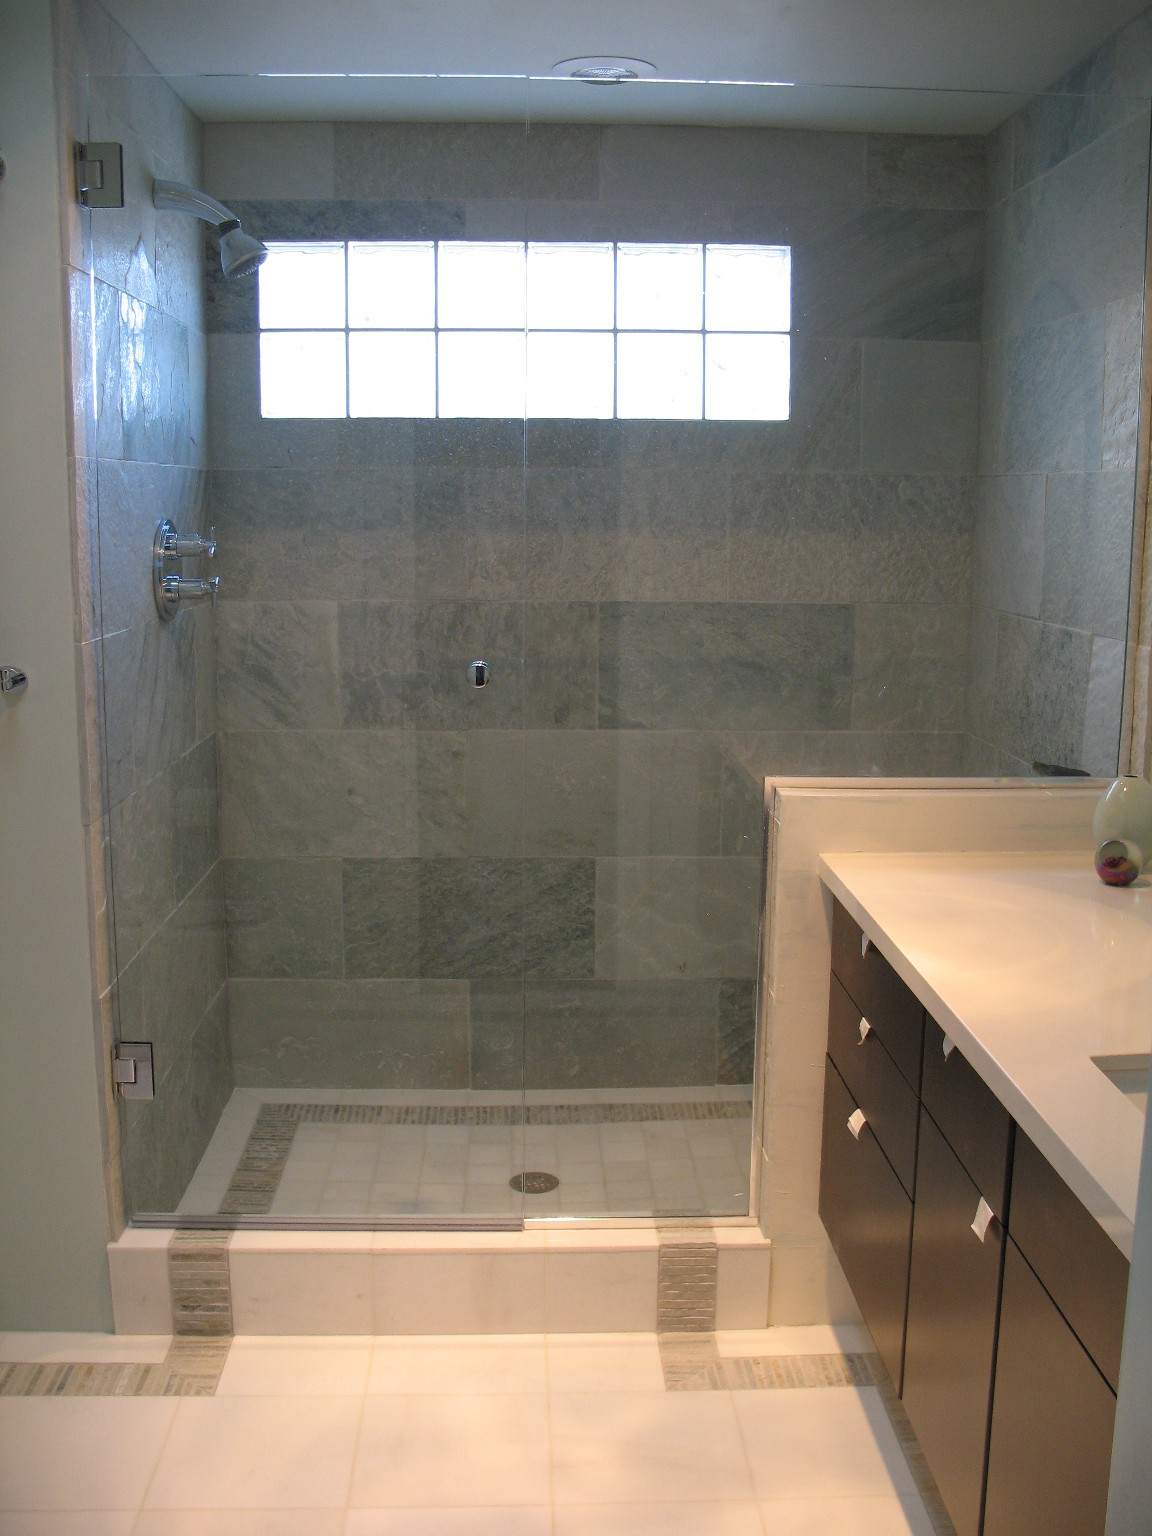 Tile Patterns For Bathroom Floors Large And Beautiful